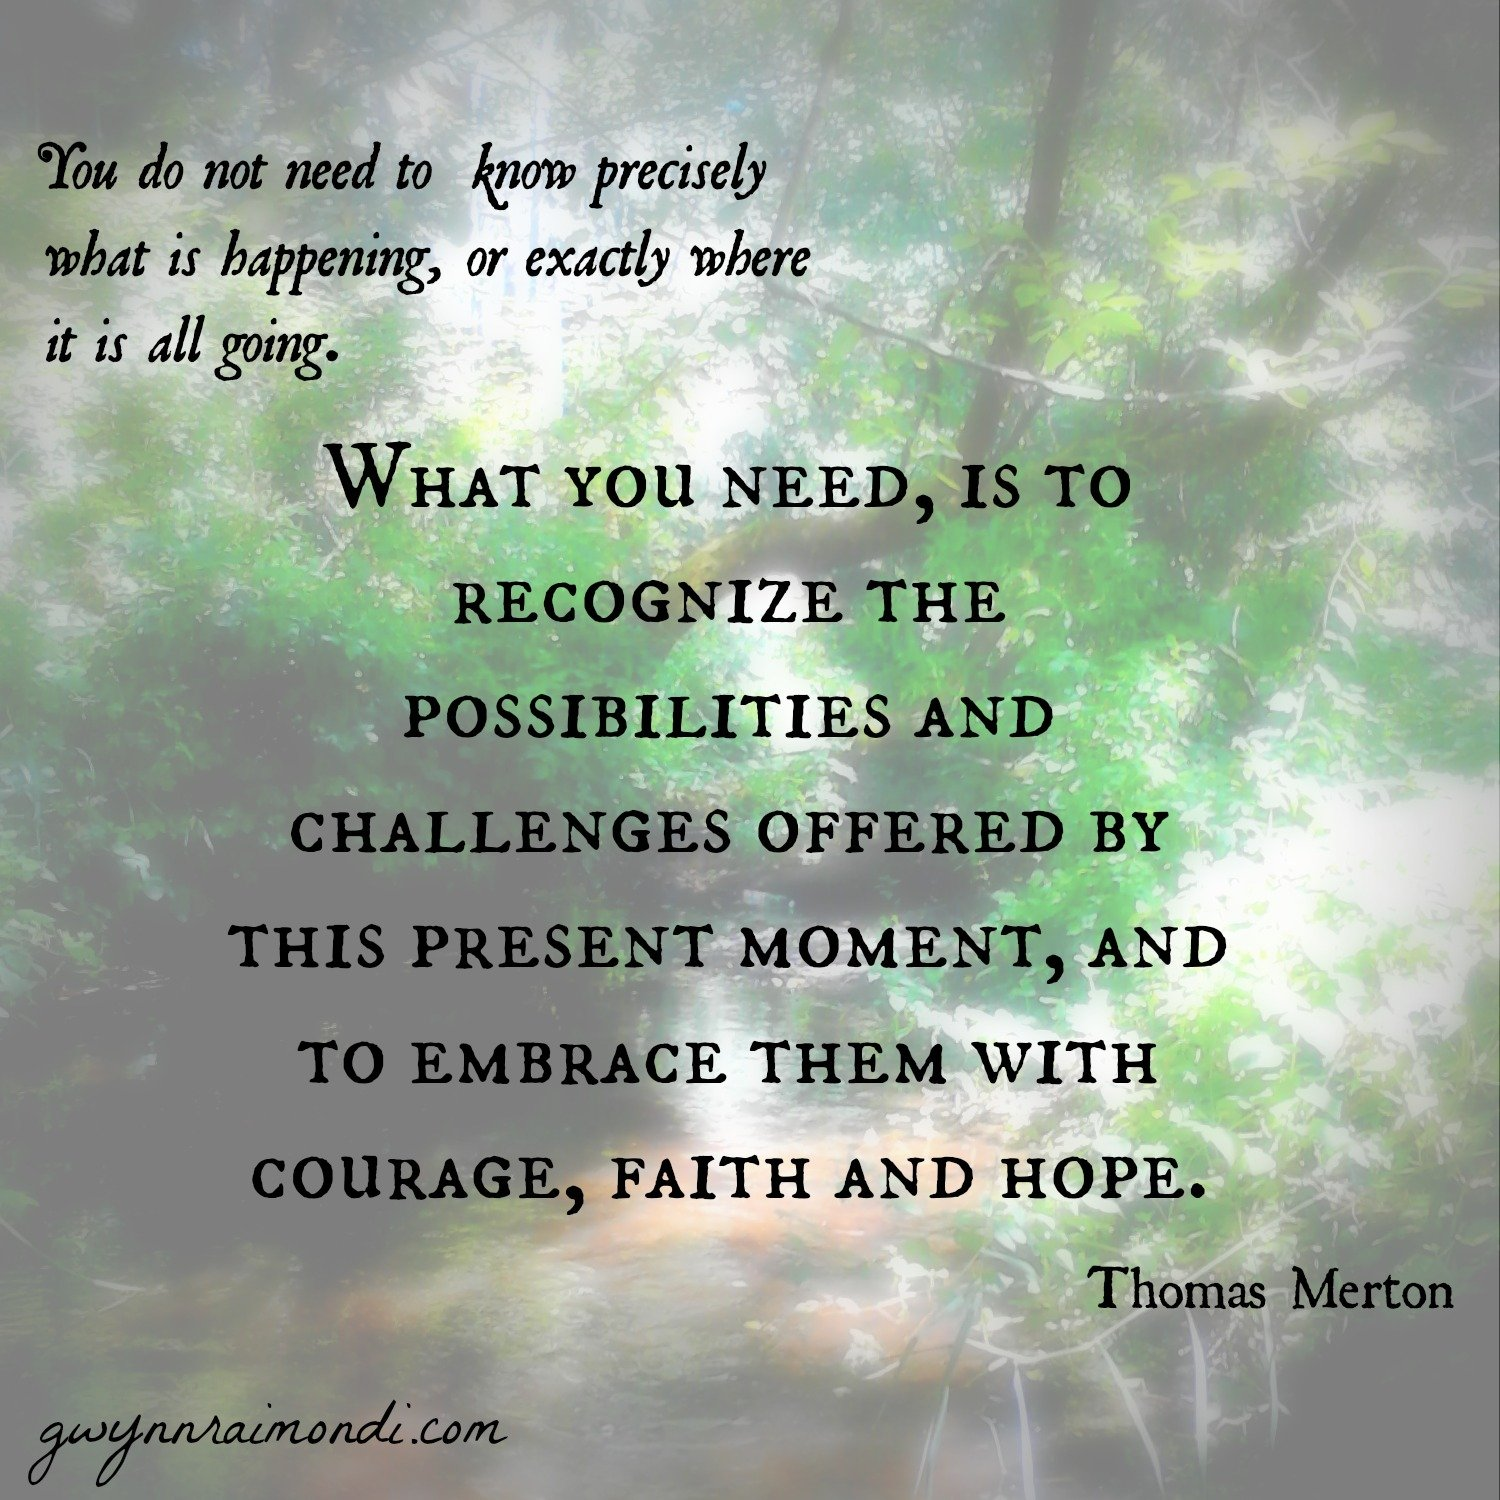 Quotes About Love: Thomas Merton Quotes About Love. QuotesGram